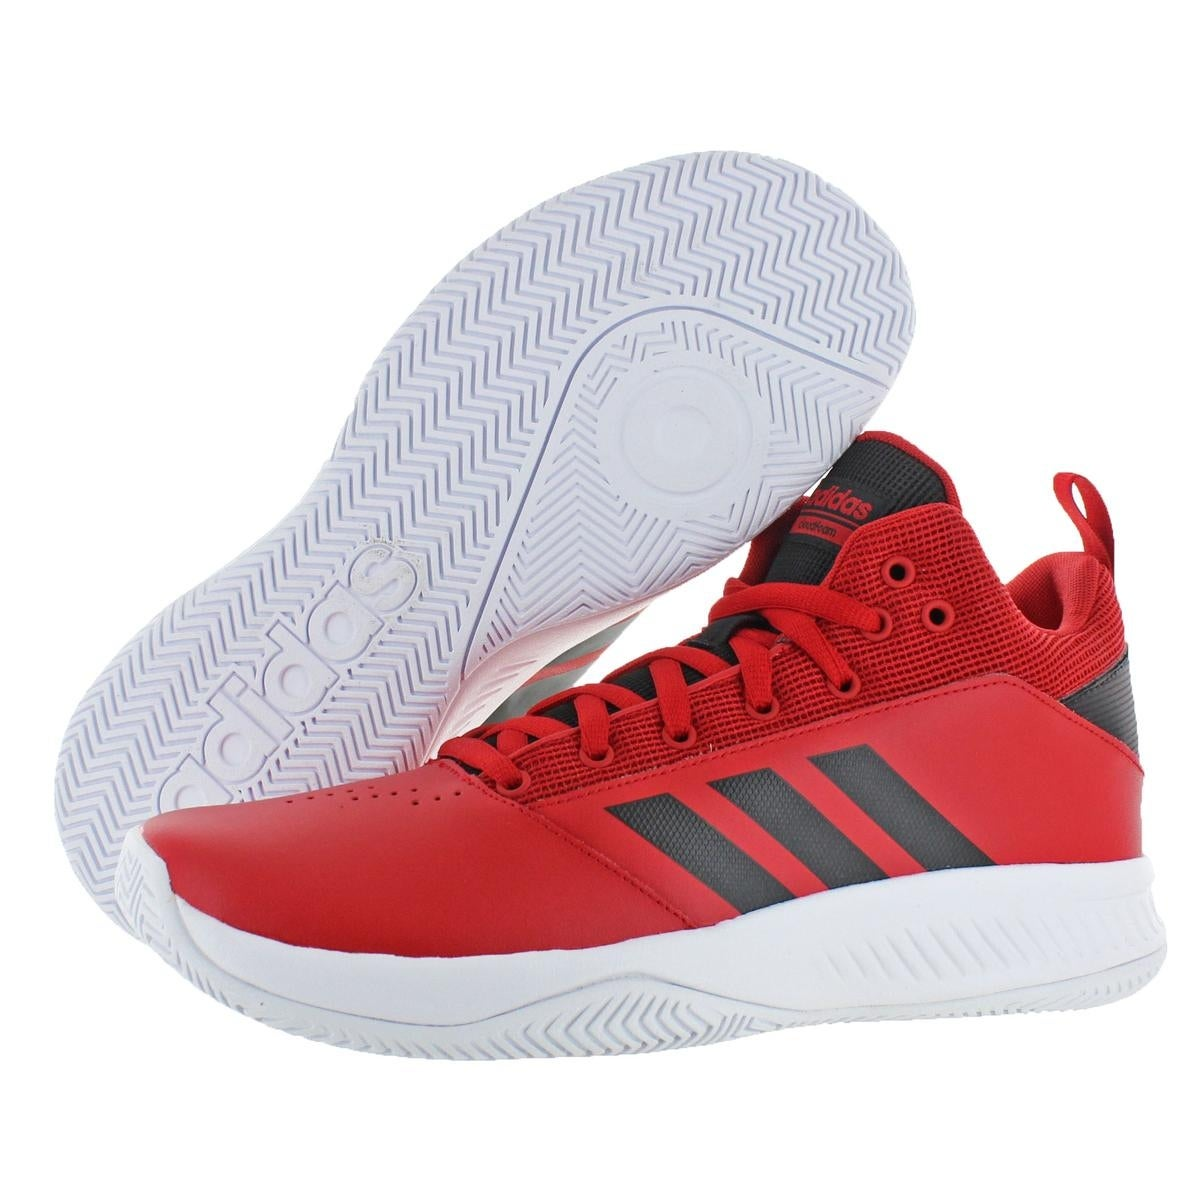 671e3e8a96b Shop Adidas Mens CF Ilation 2.0 Basketball Shoes Sport Performance ...